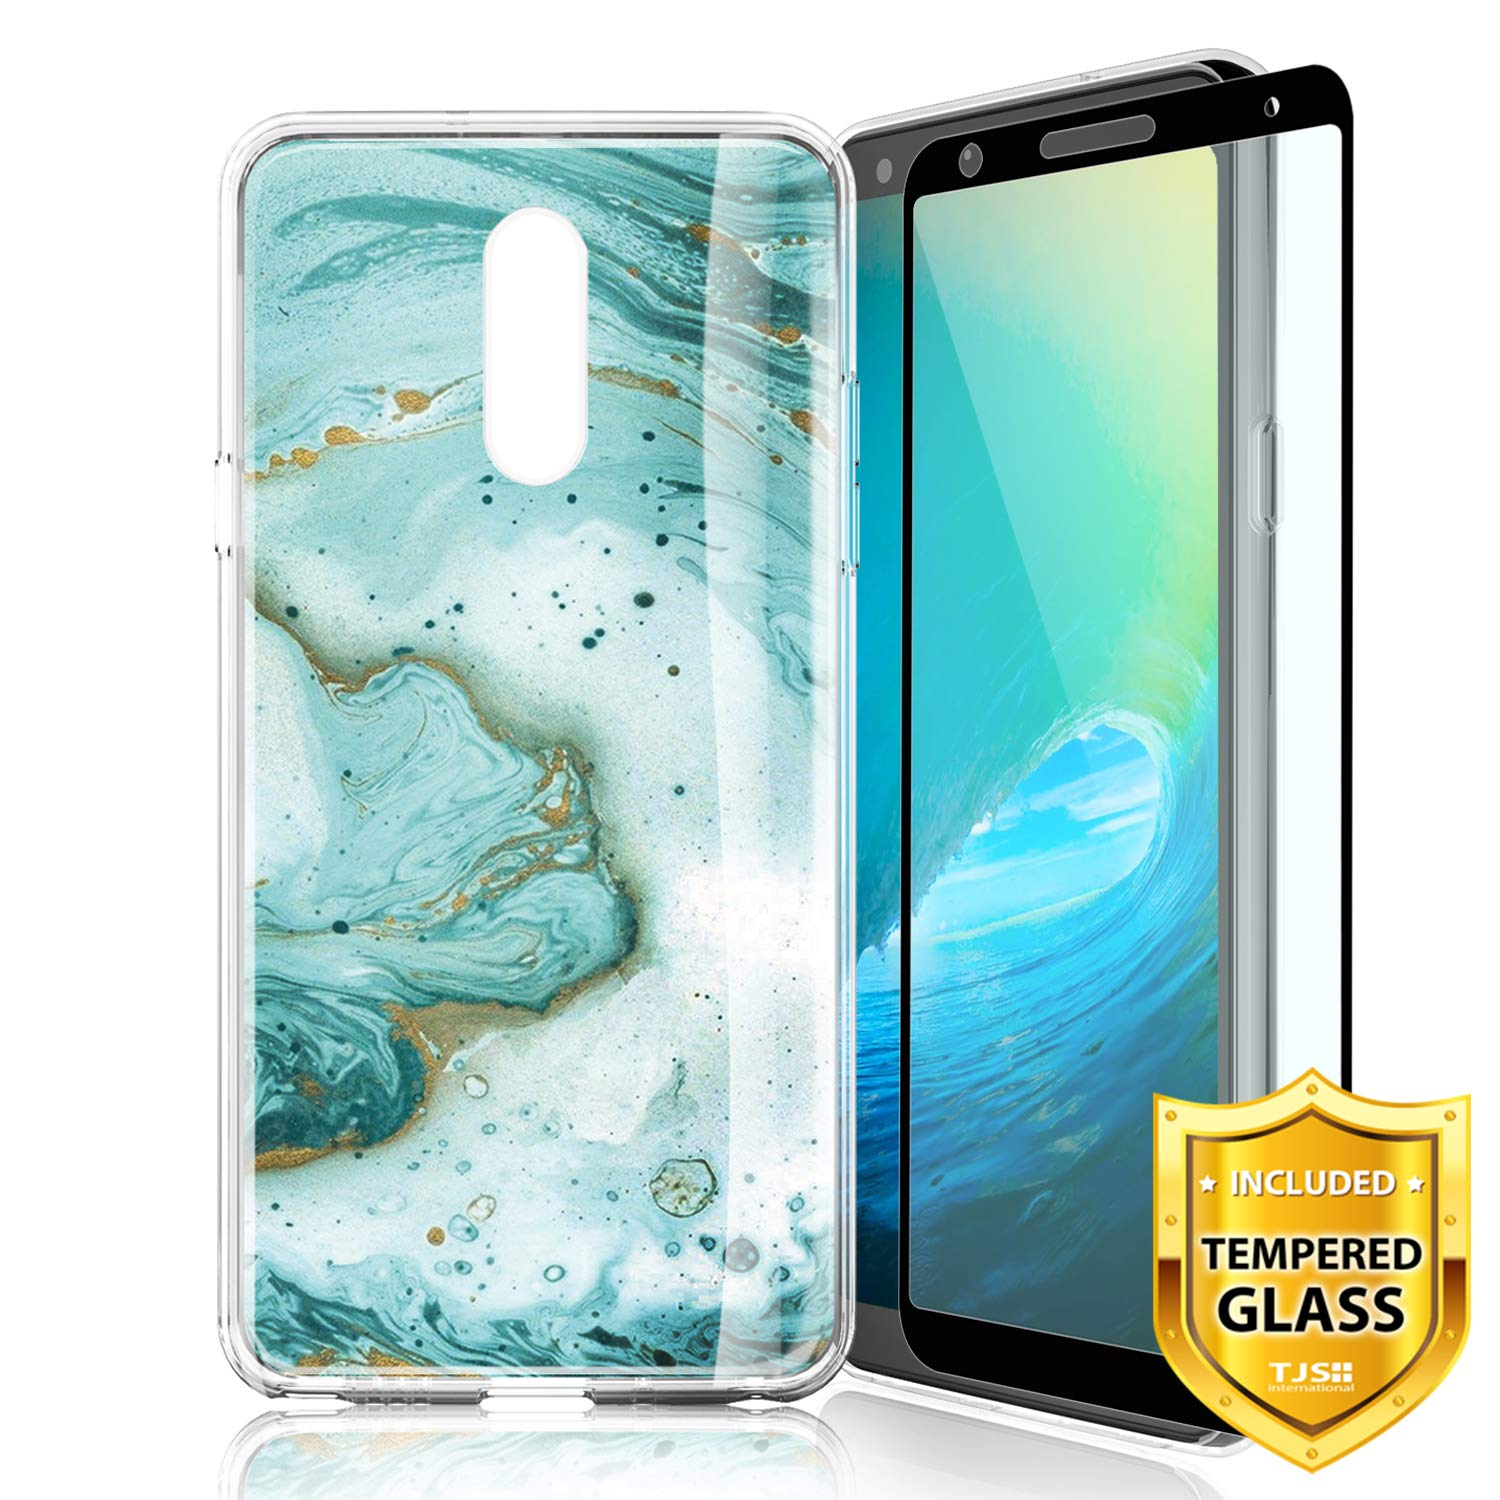 TJS Phone Case for LG Aristo 4 Plus X320/LG X2 2019/LG K30 2019, with [Full Coverage Tempered Glass Screen Protector] Ultra Thin Slim TPU Matte Color Marble Transparent Clear Soft Skin (Green)